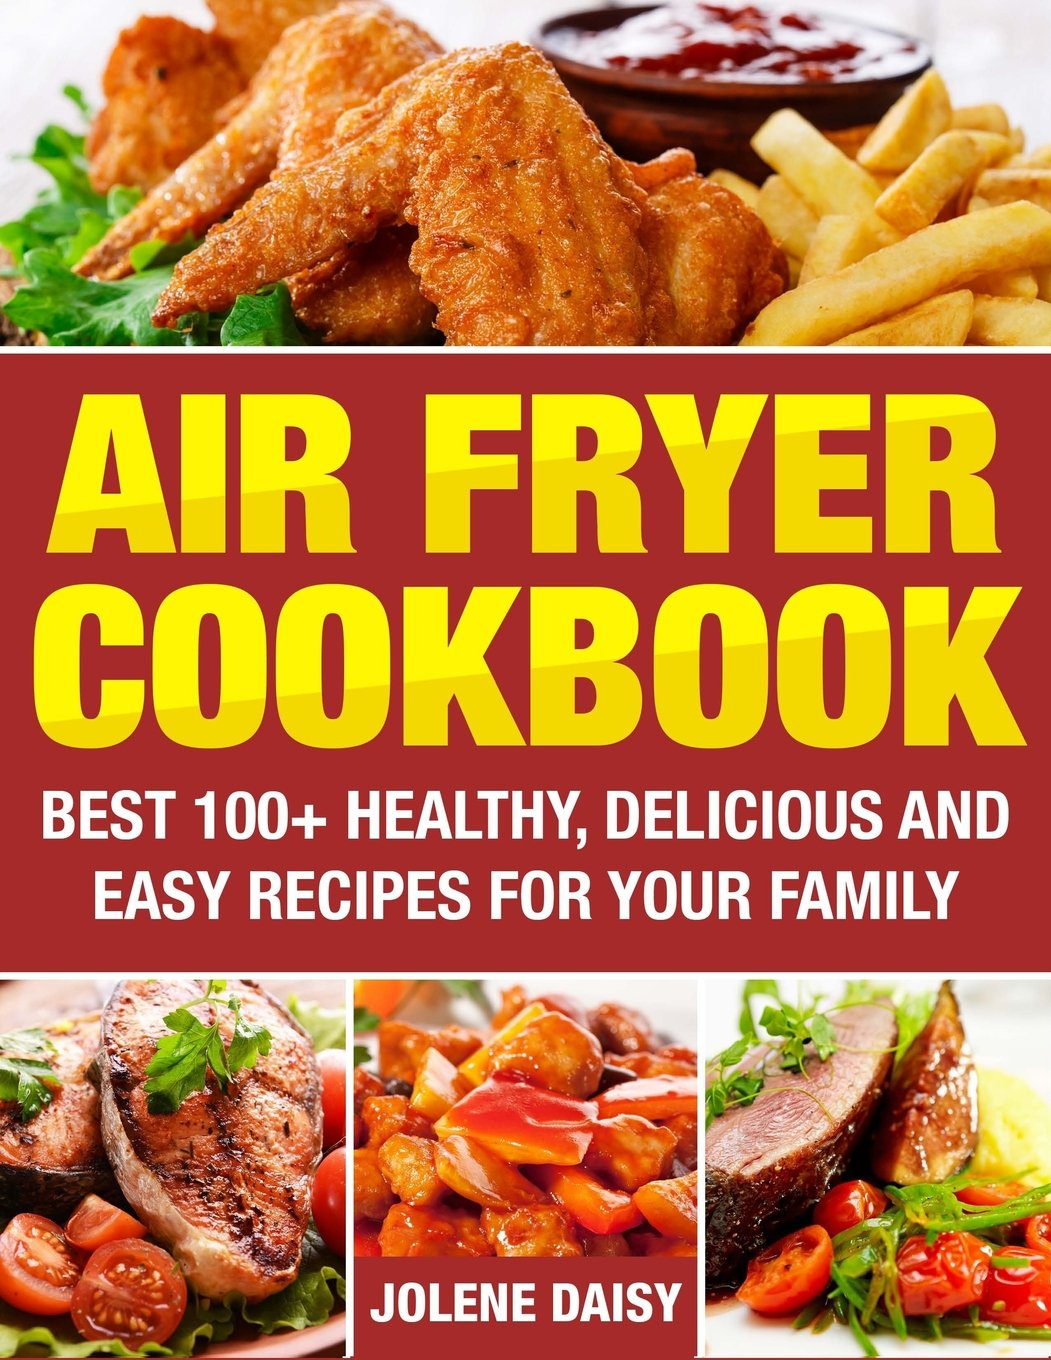 Buy Air Fryer Cookbook: Best 100+ Healthy, Delicious and Easy Recipes for  Your Family Book Online at Low Prices in India | Air Fryer Cookbook: Best  100+ ...